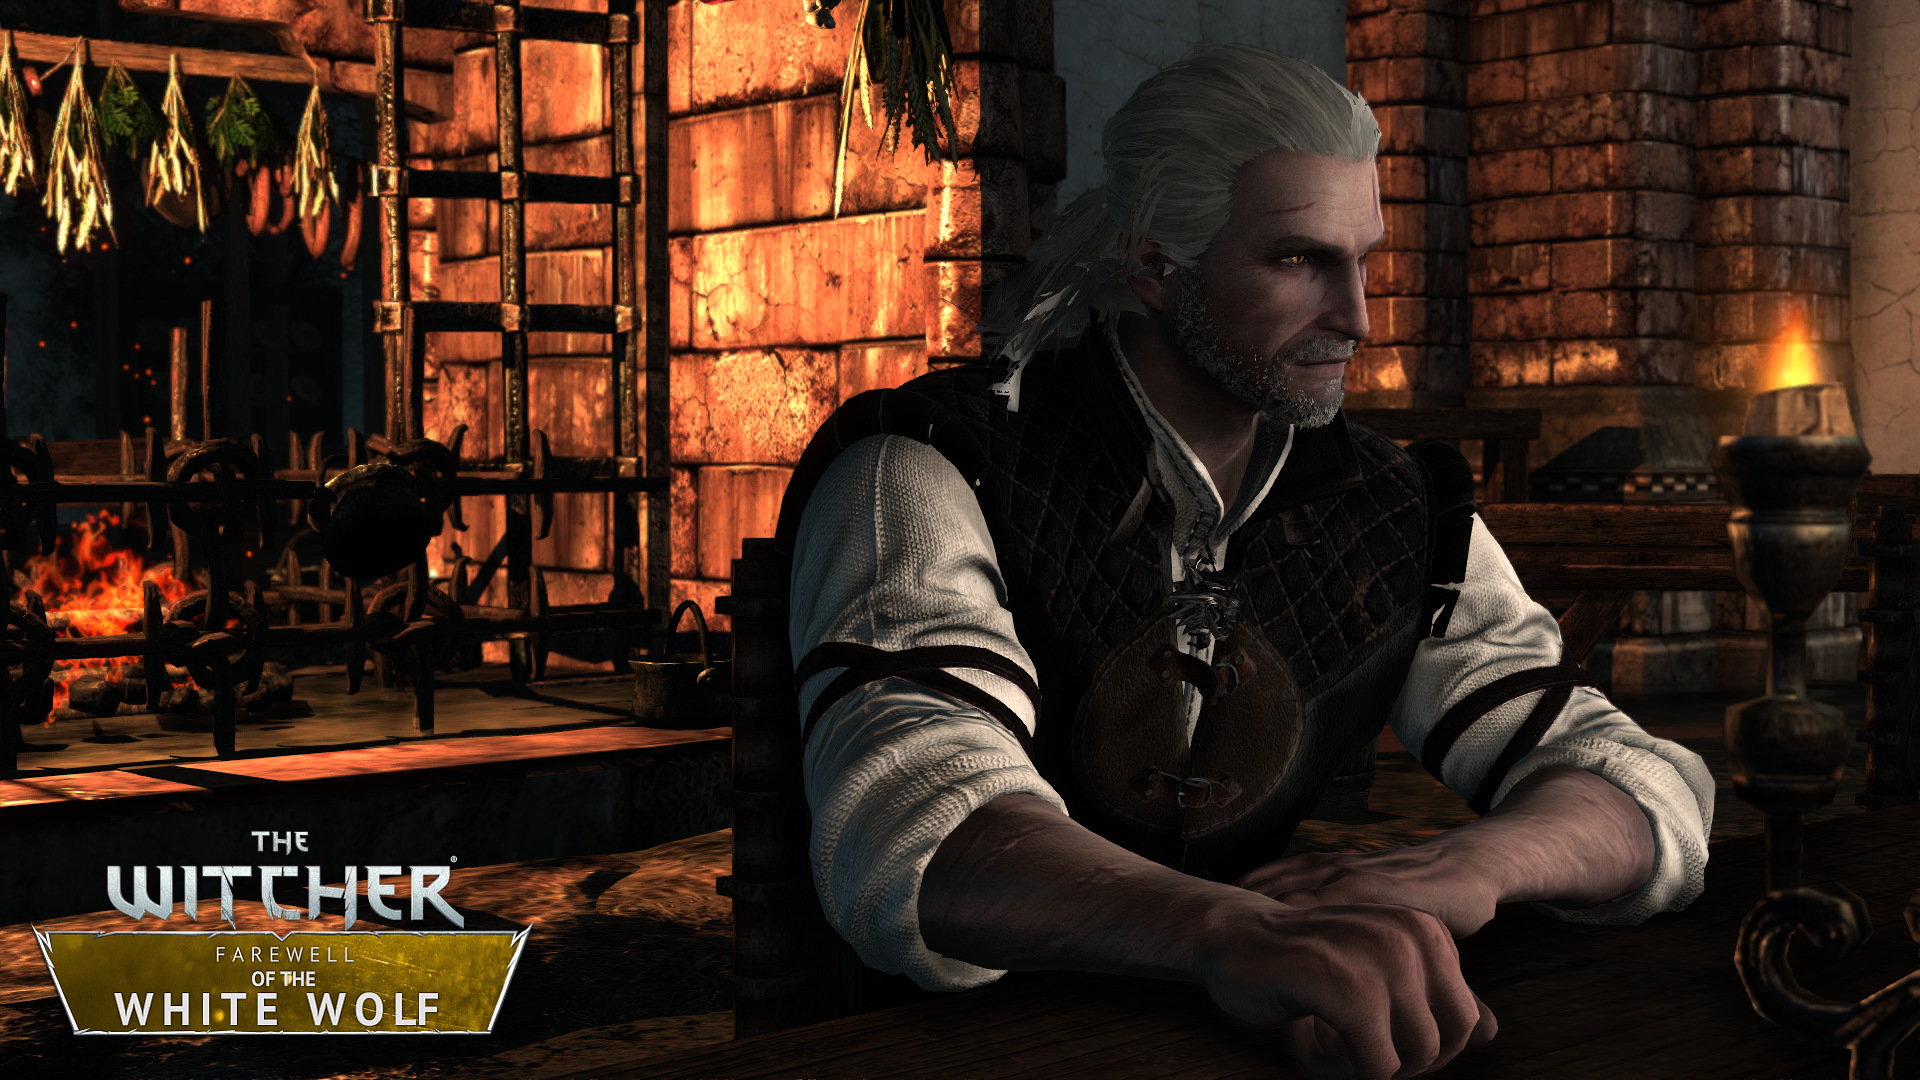 witcher-farewell-of-the-whitewolf-019